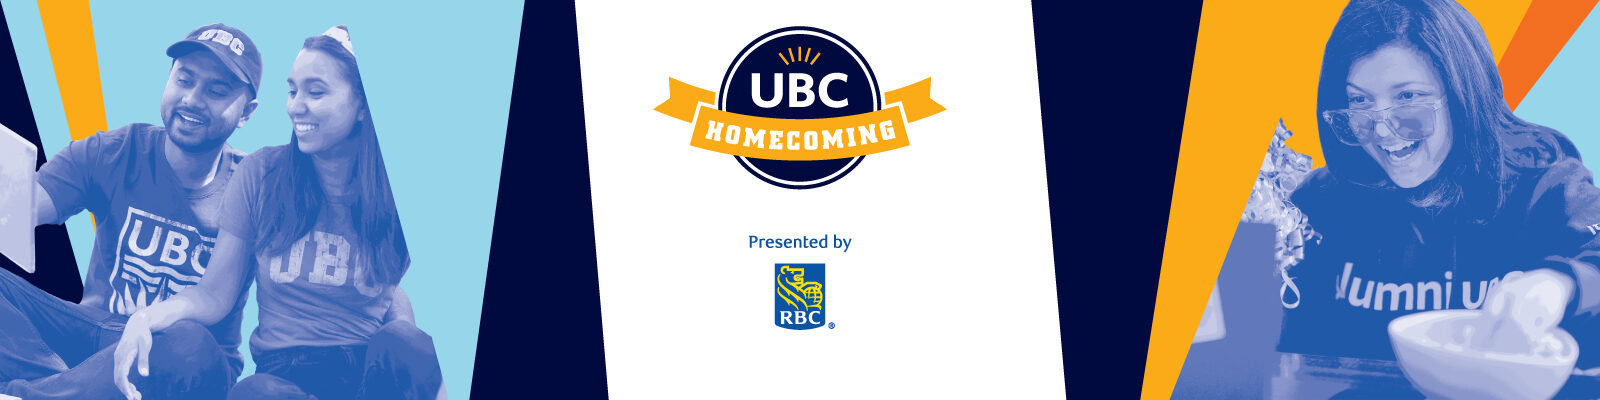 UBC Homecoming presented by RBC